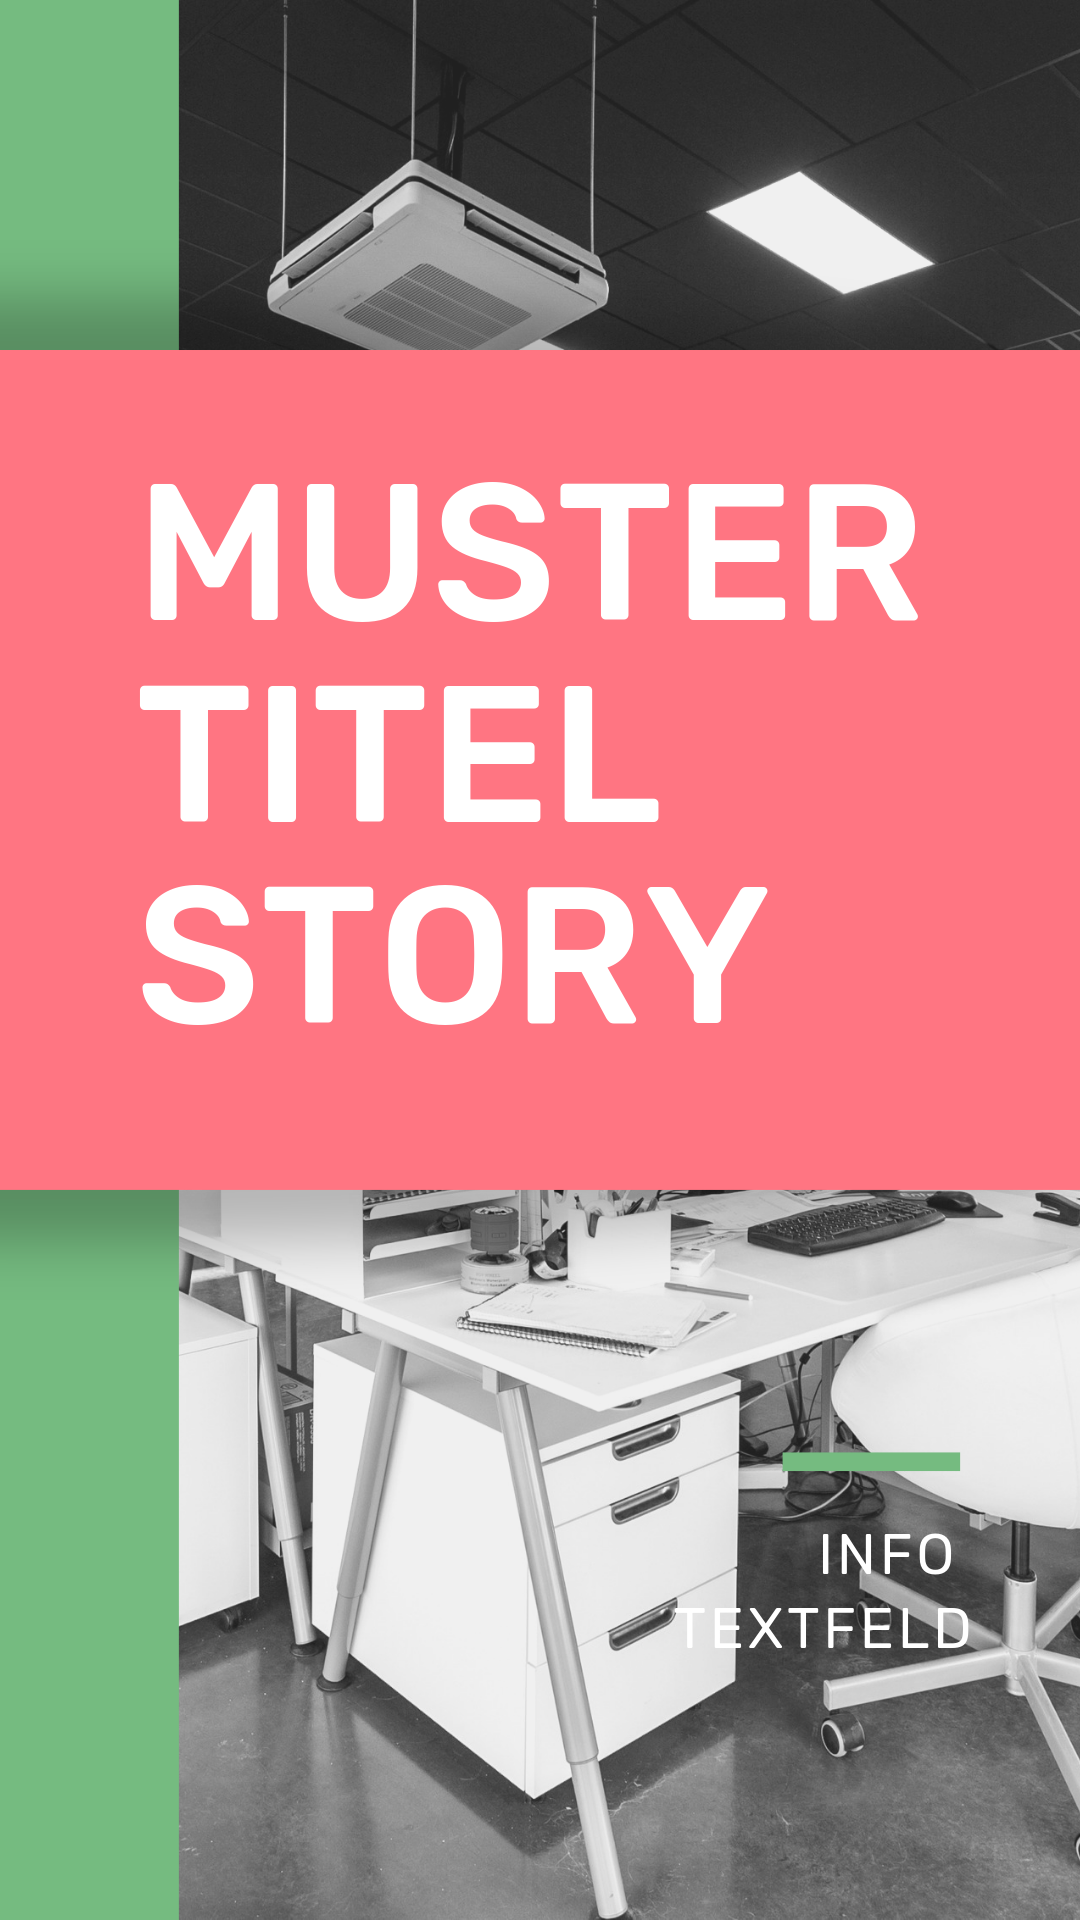 Muster Titel Story anzeige.PNG